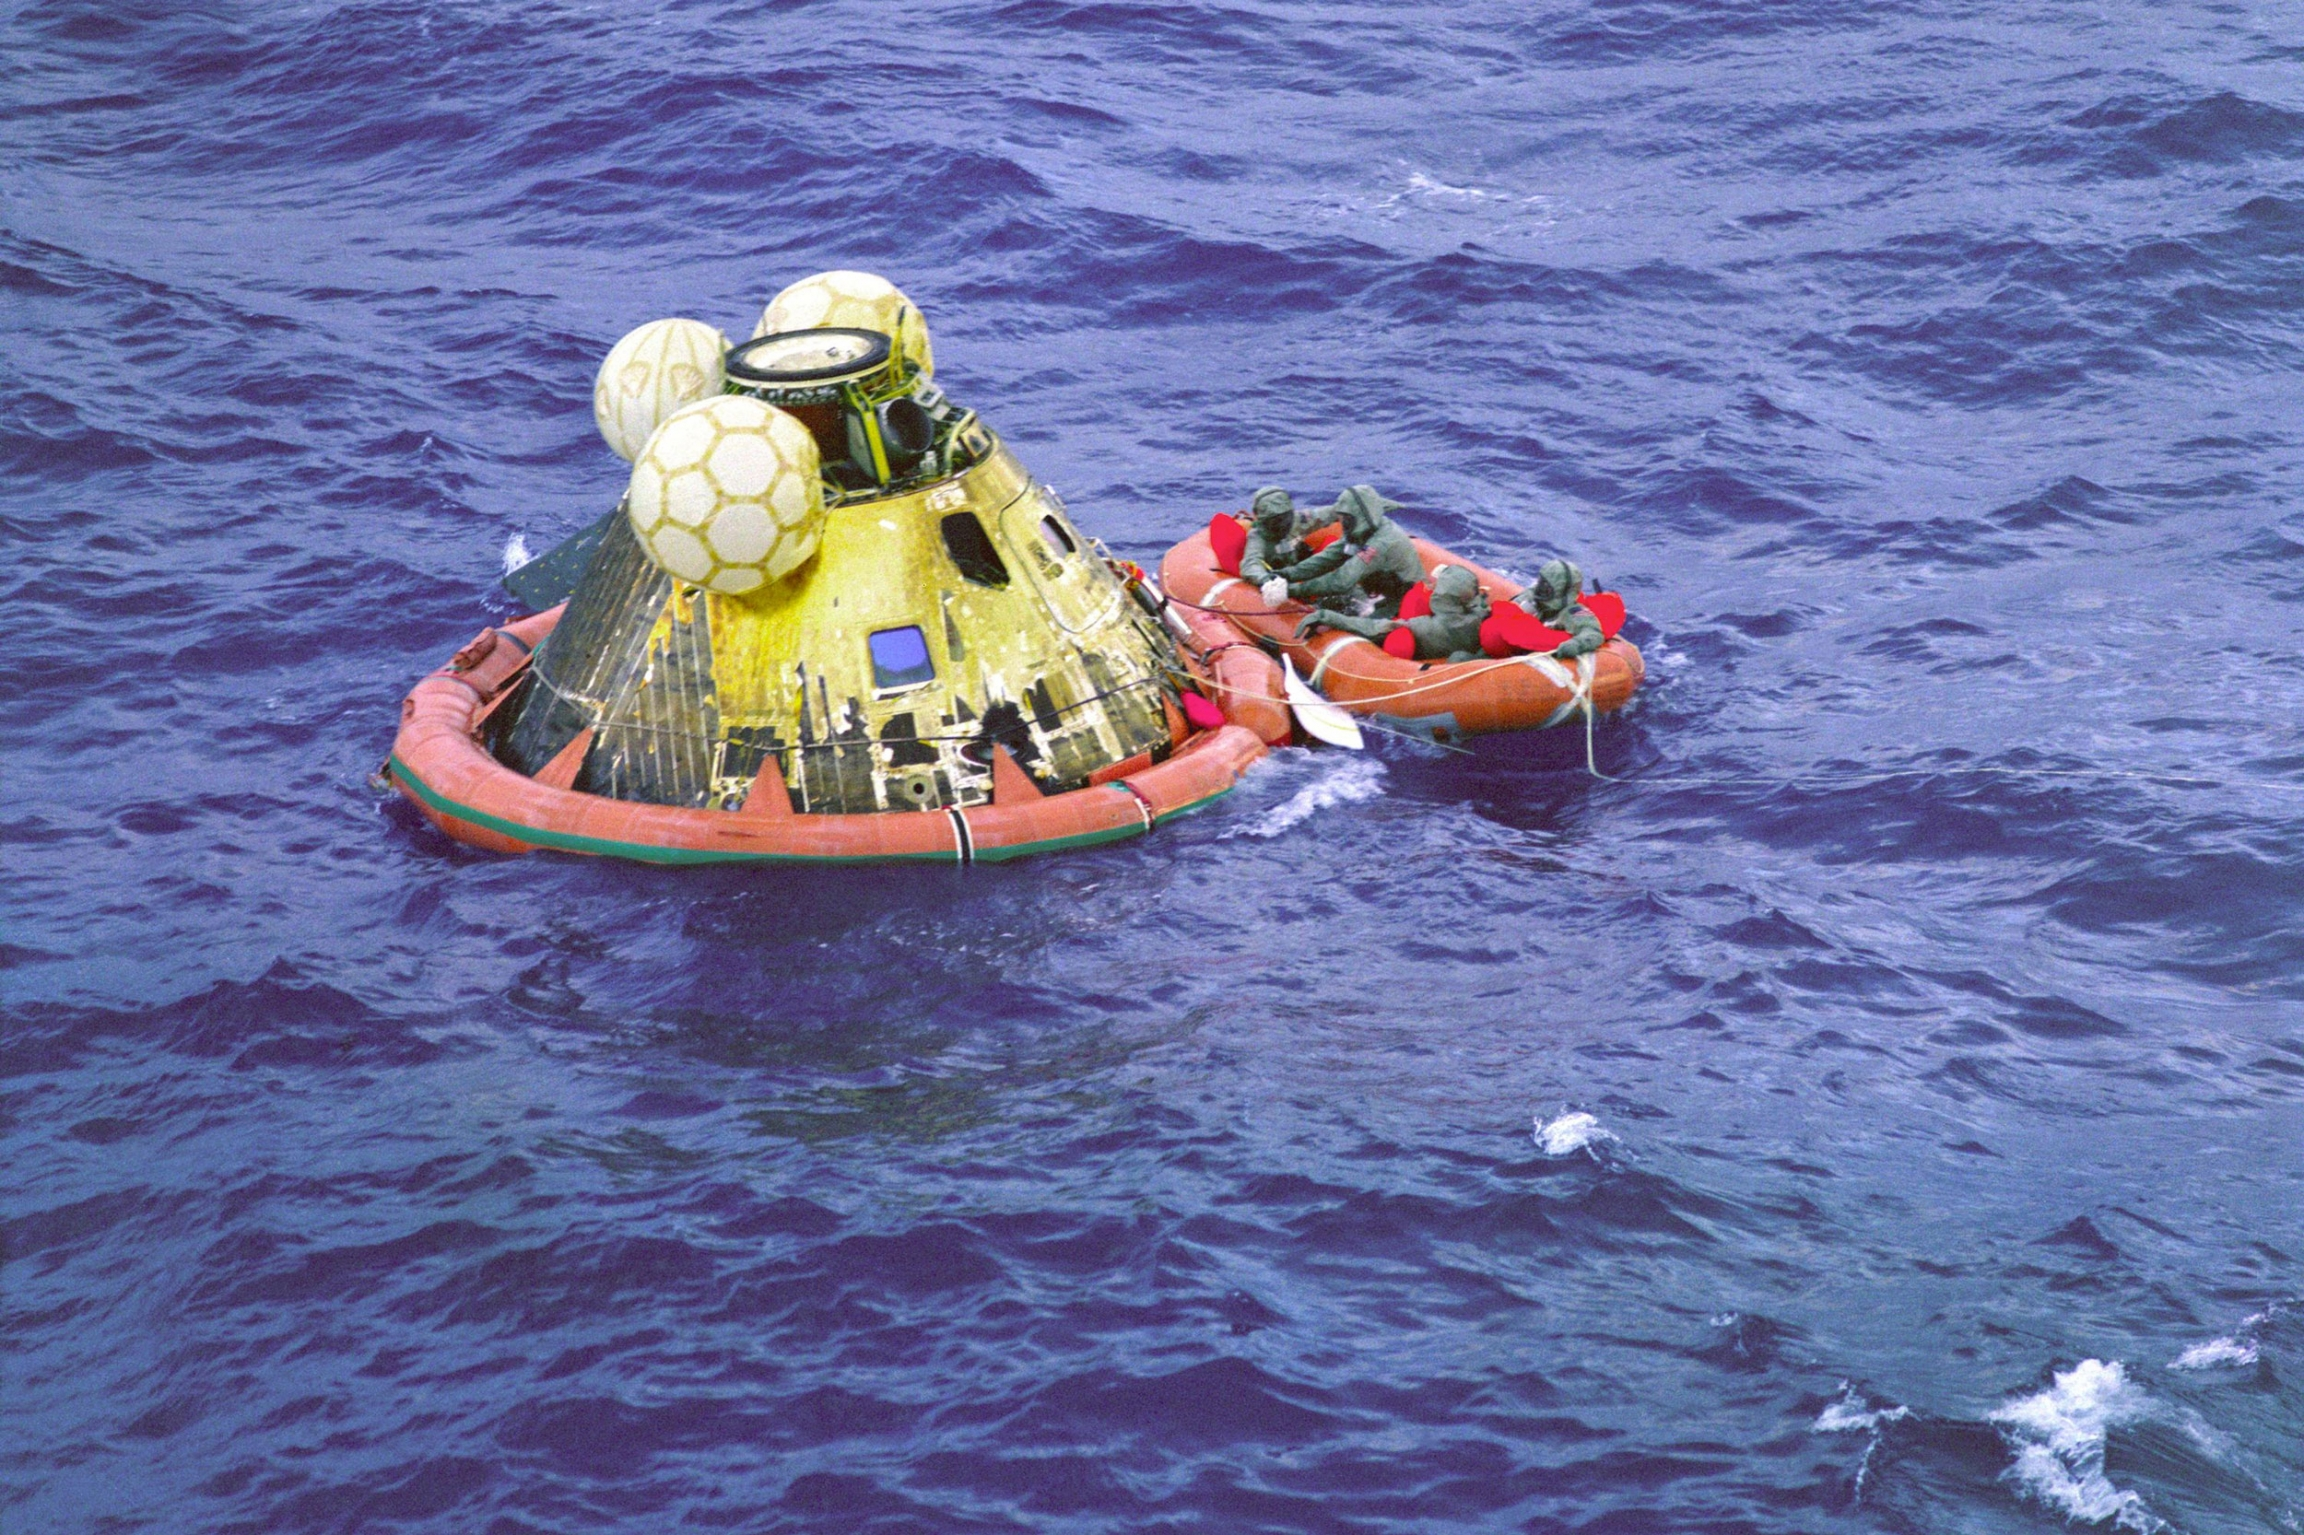 A small orange raft is shown with astaurants aboard, floating next to luna modual.